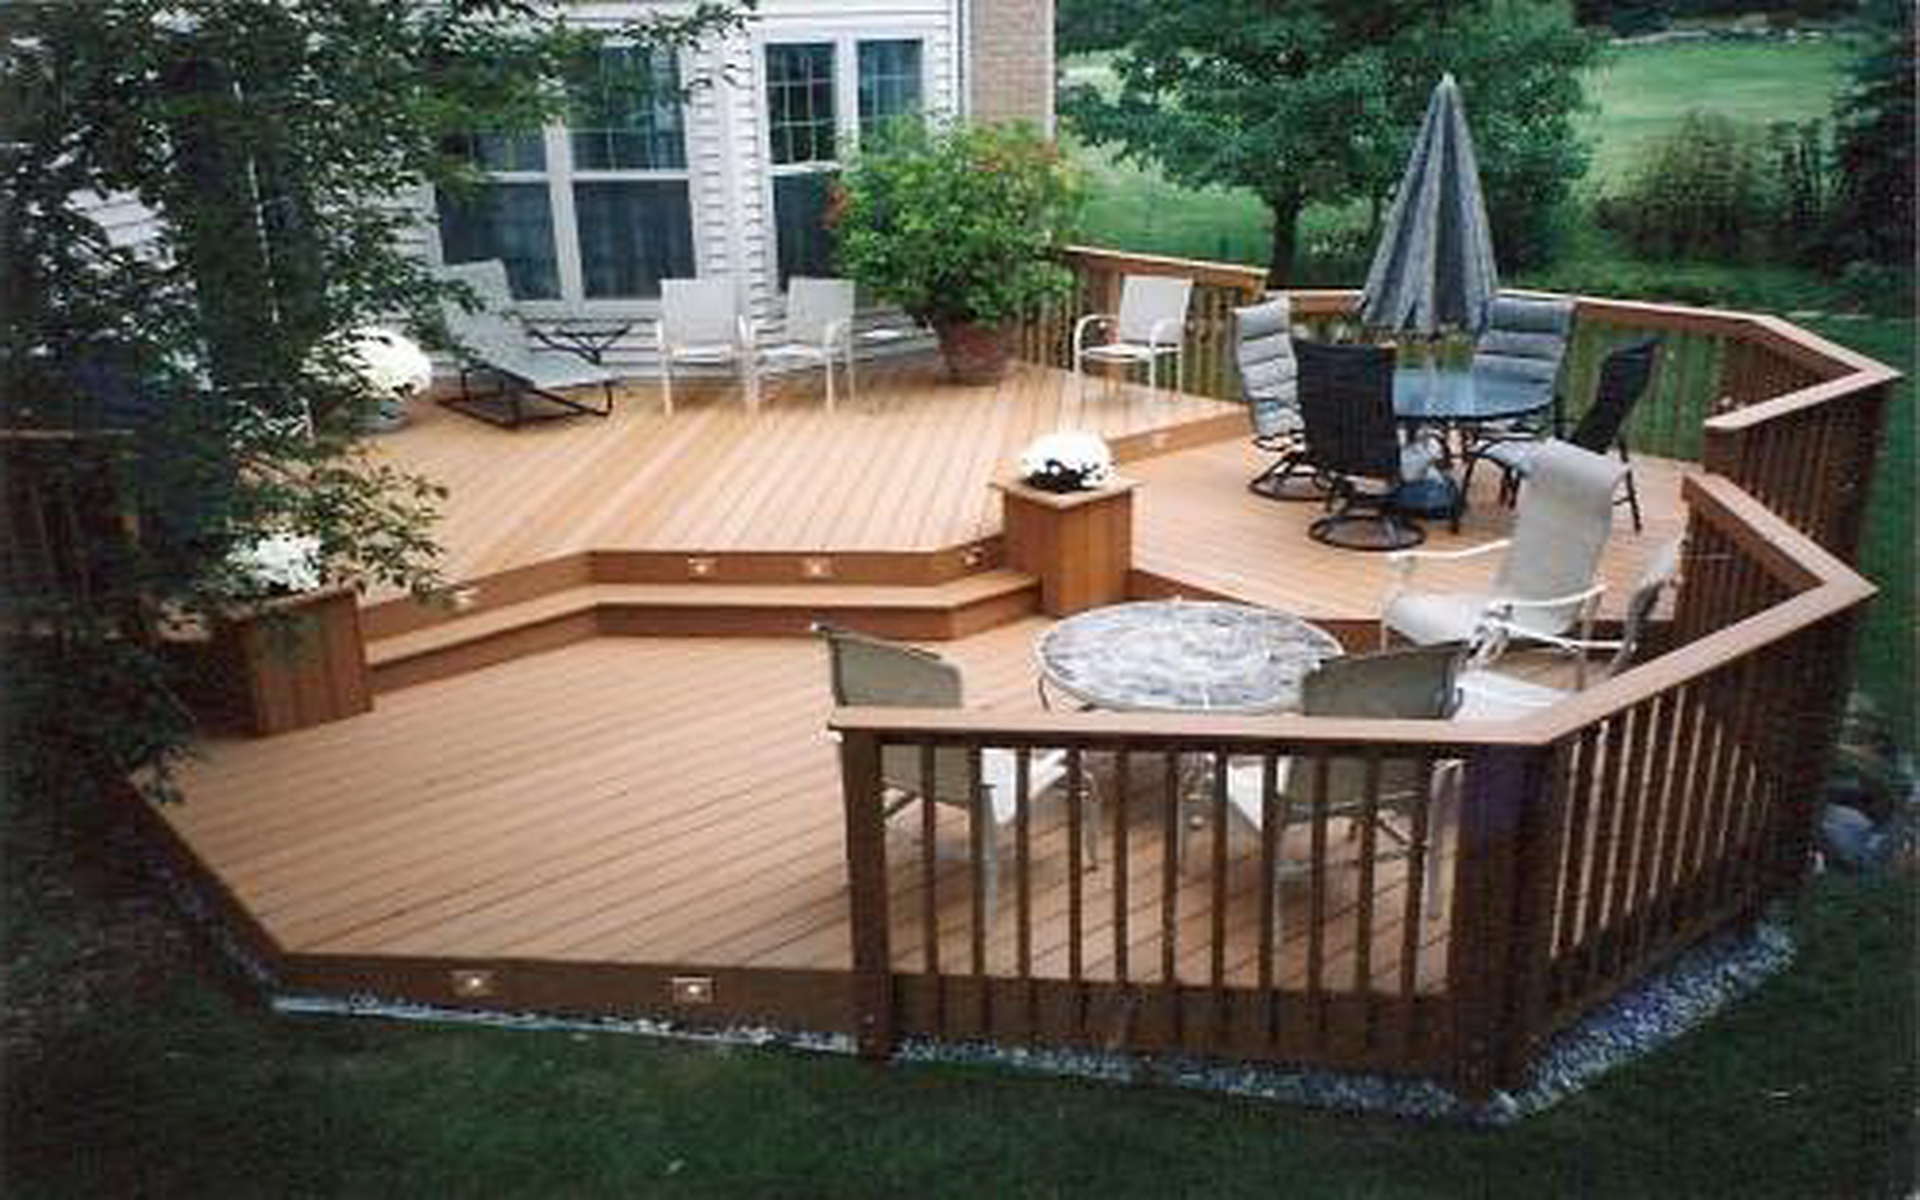 VIEW IN GALLERY Wooden Decks For Small Backyards